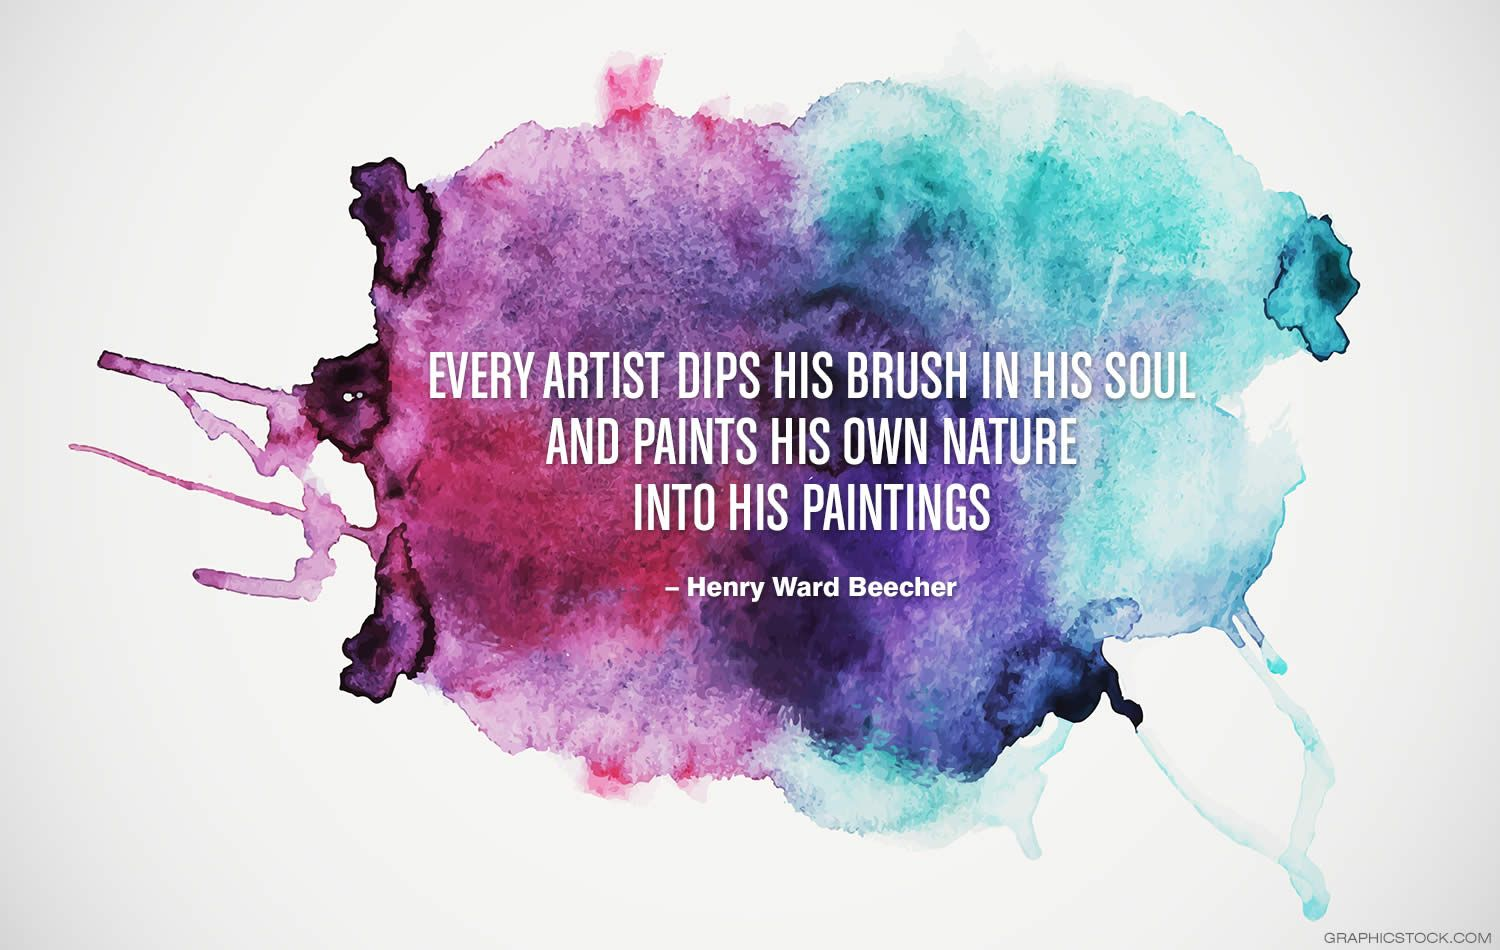 10 Inspirational Quotes About Creativity and Art